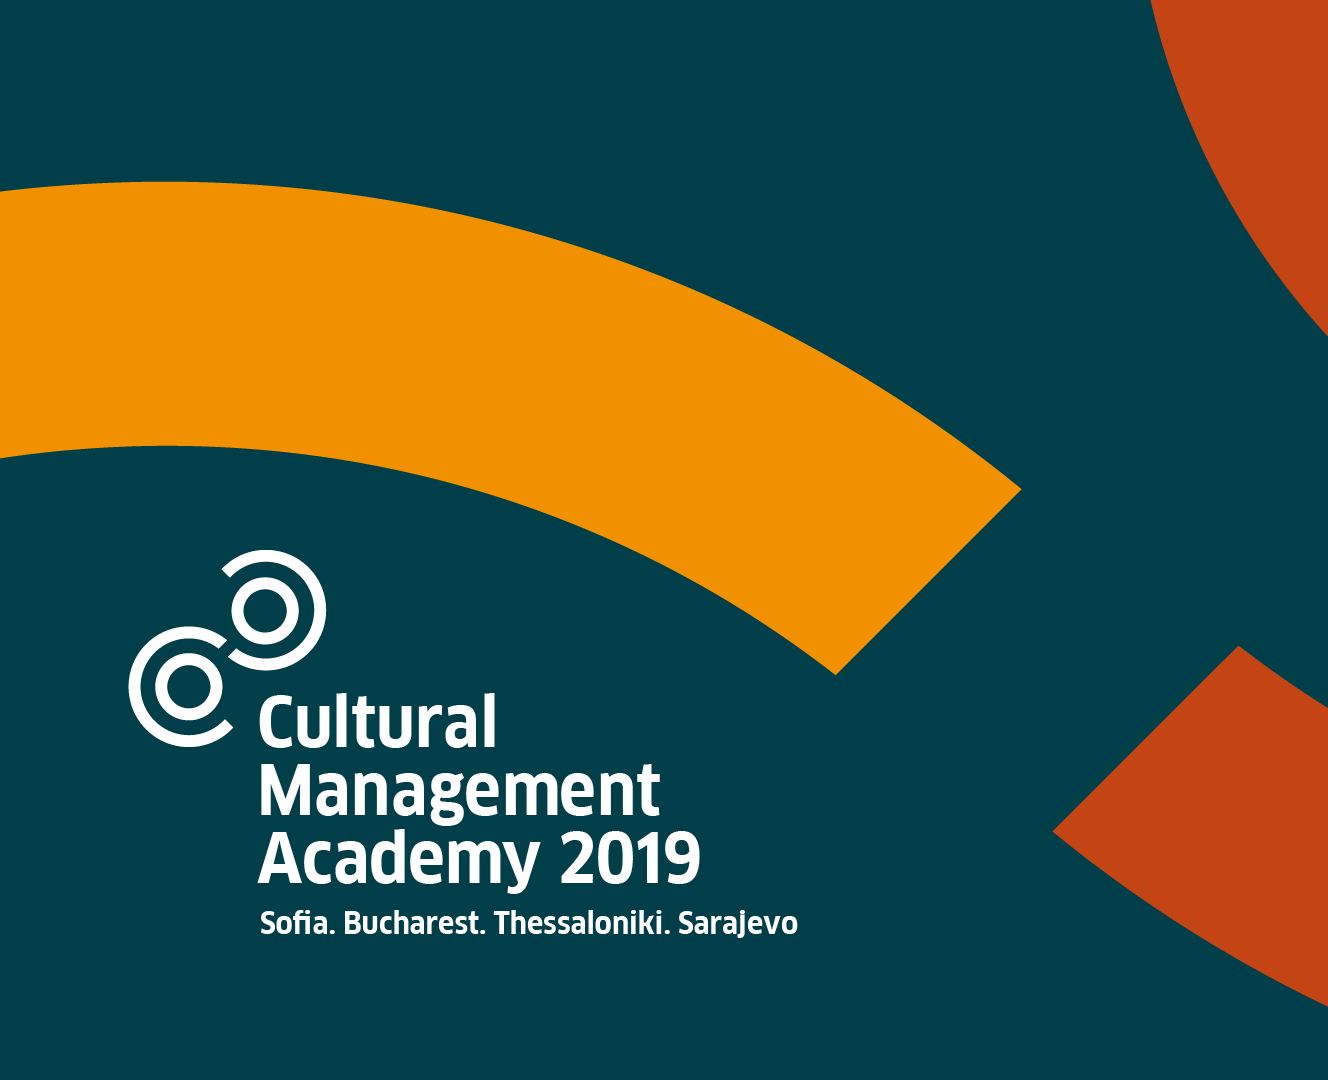 CULTURAL MANAGEMENT ACADEMY 2019